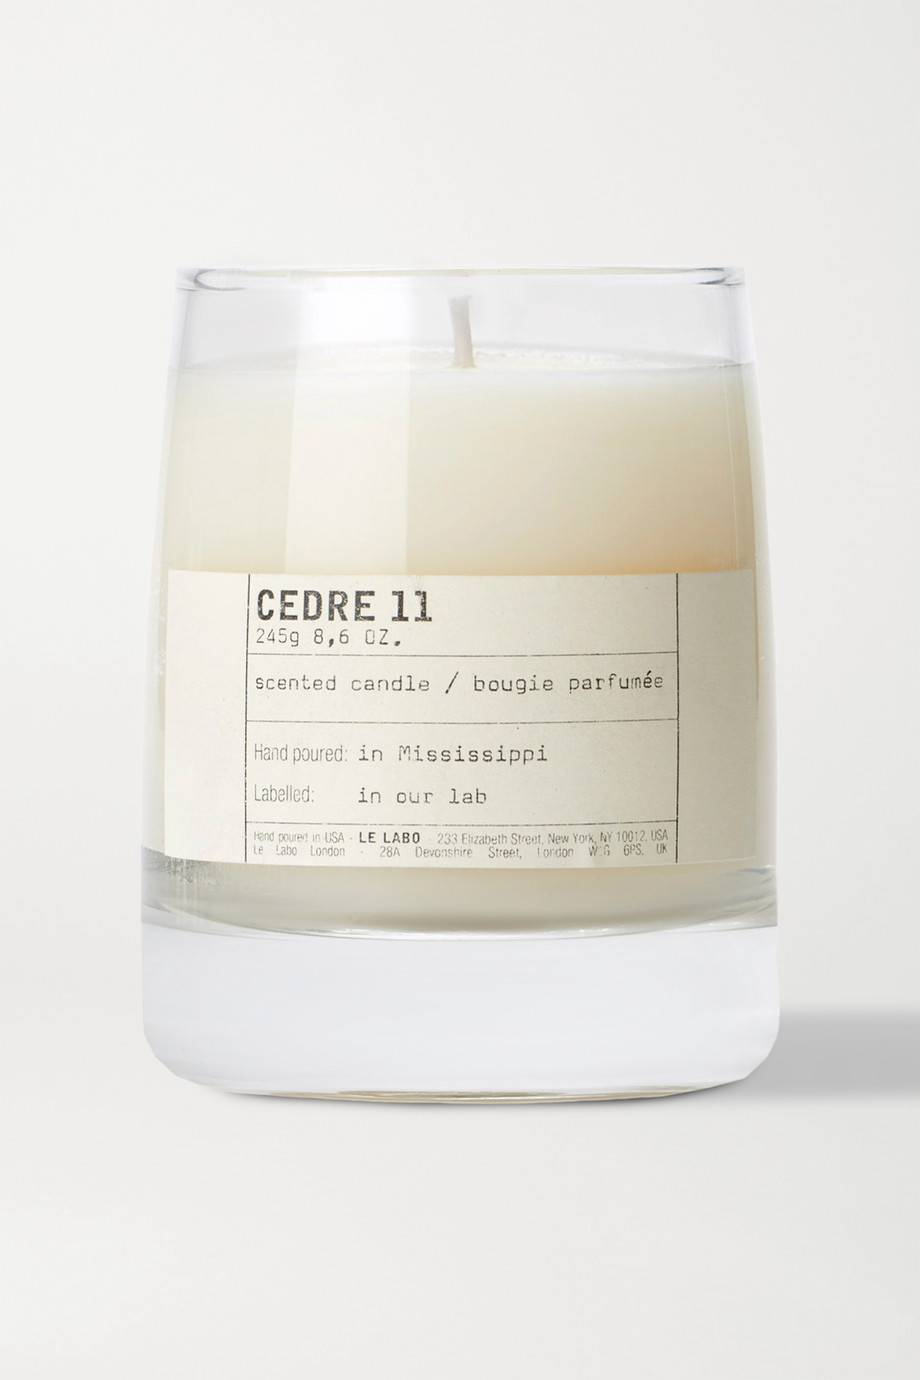 Le Labo Cedre 11 scented candle, 245g